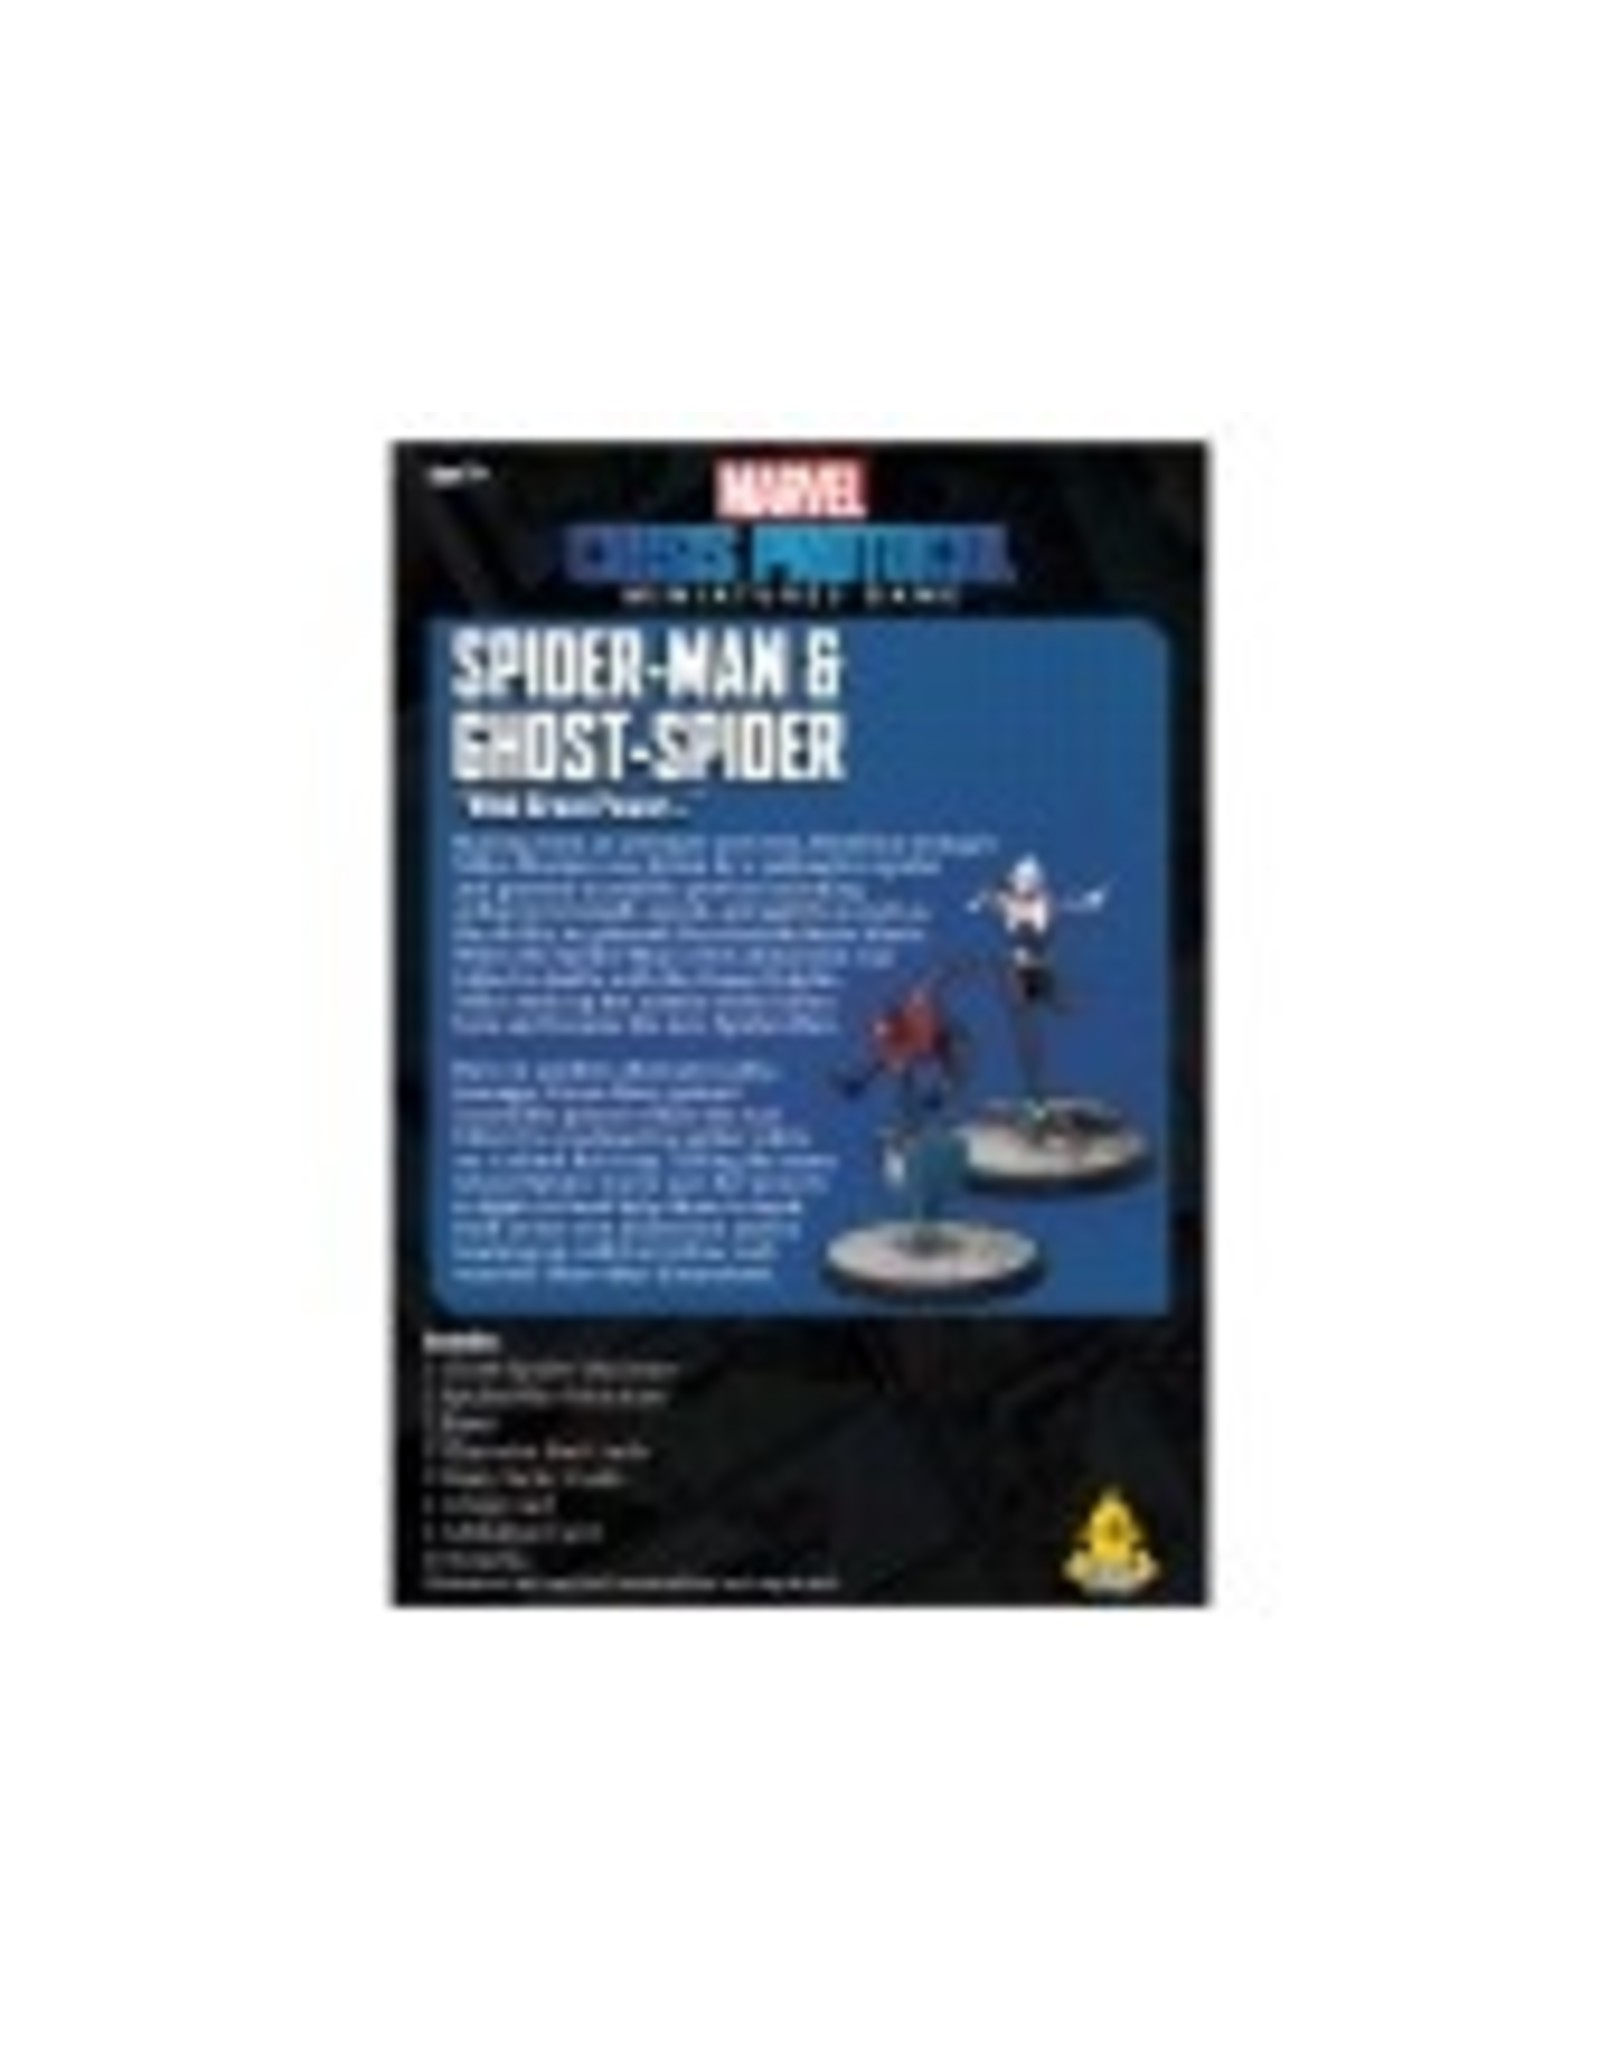 Atomic Mass Games Marvel: Crisis Protocol - Spider-Man & Ghost-Spider Pack